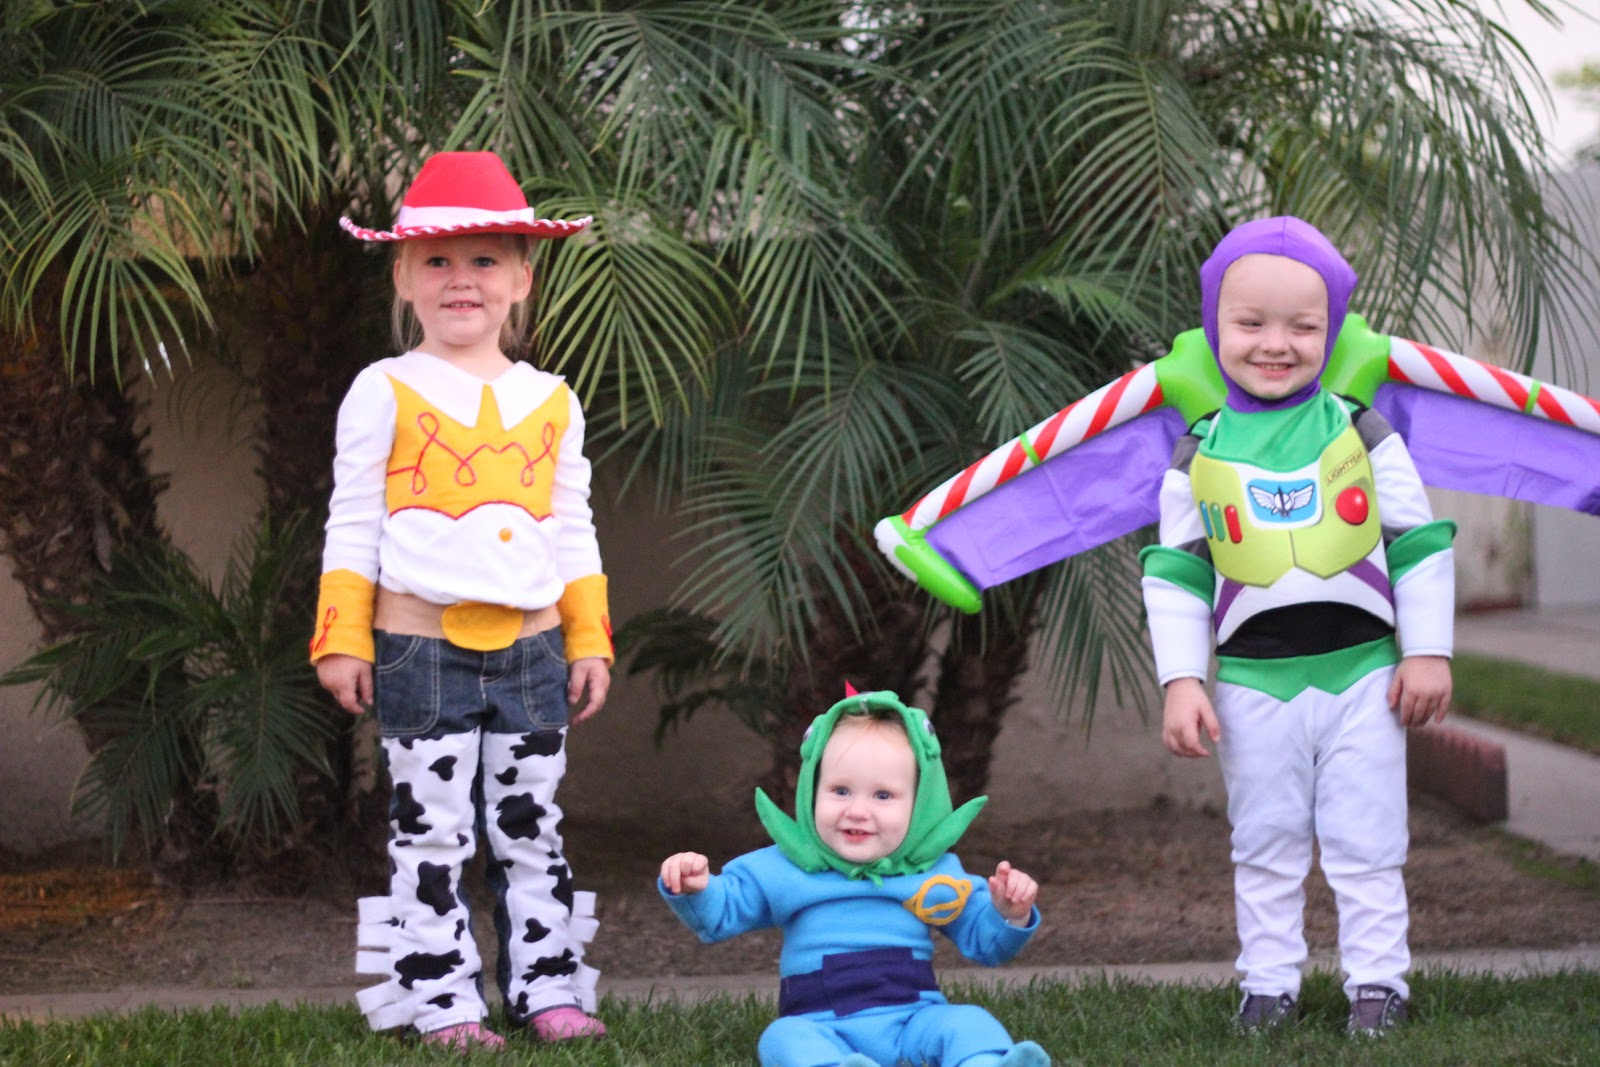 And...they were the cutest Jessie Buzz u0026 Little Green Alien around.  sc 1 st  My Way Momma & My Way Momma: Toy Story Costumes u0026 More